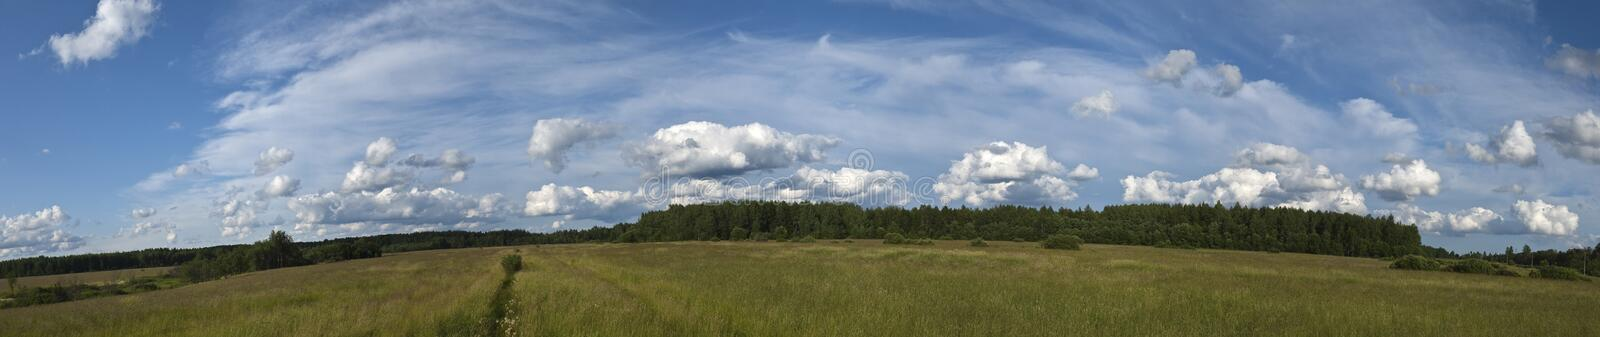 Download Boundless field stock photo. Image of color, green, environment - 10995898